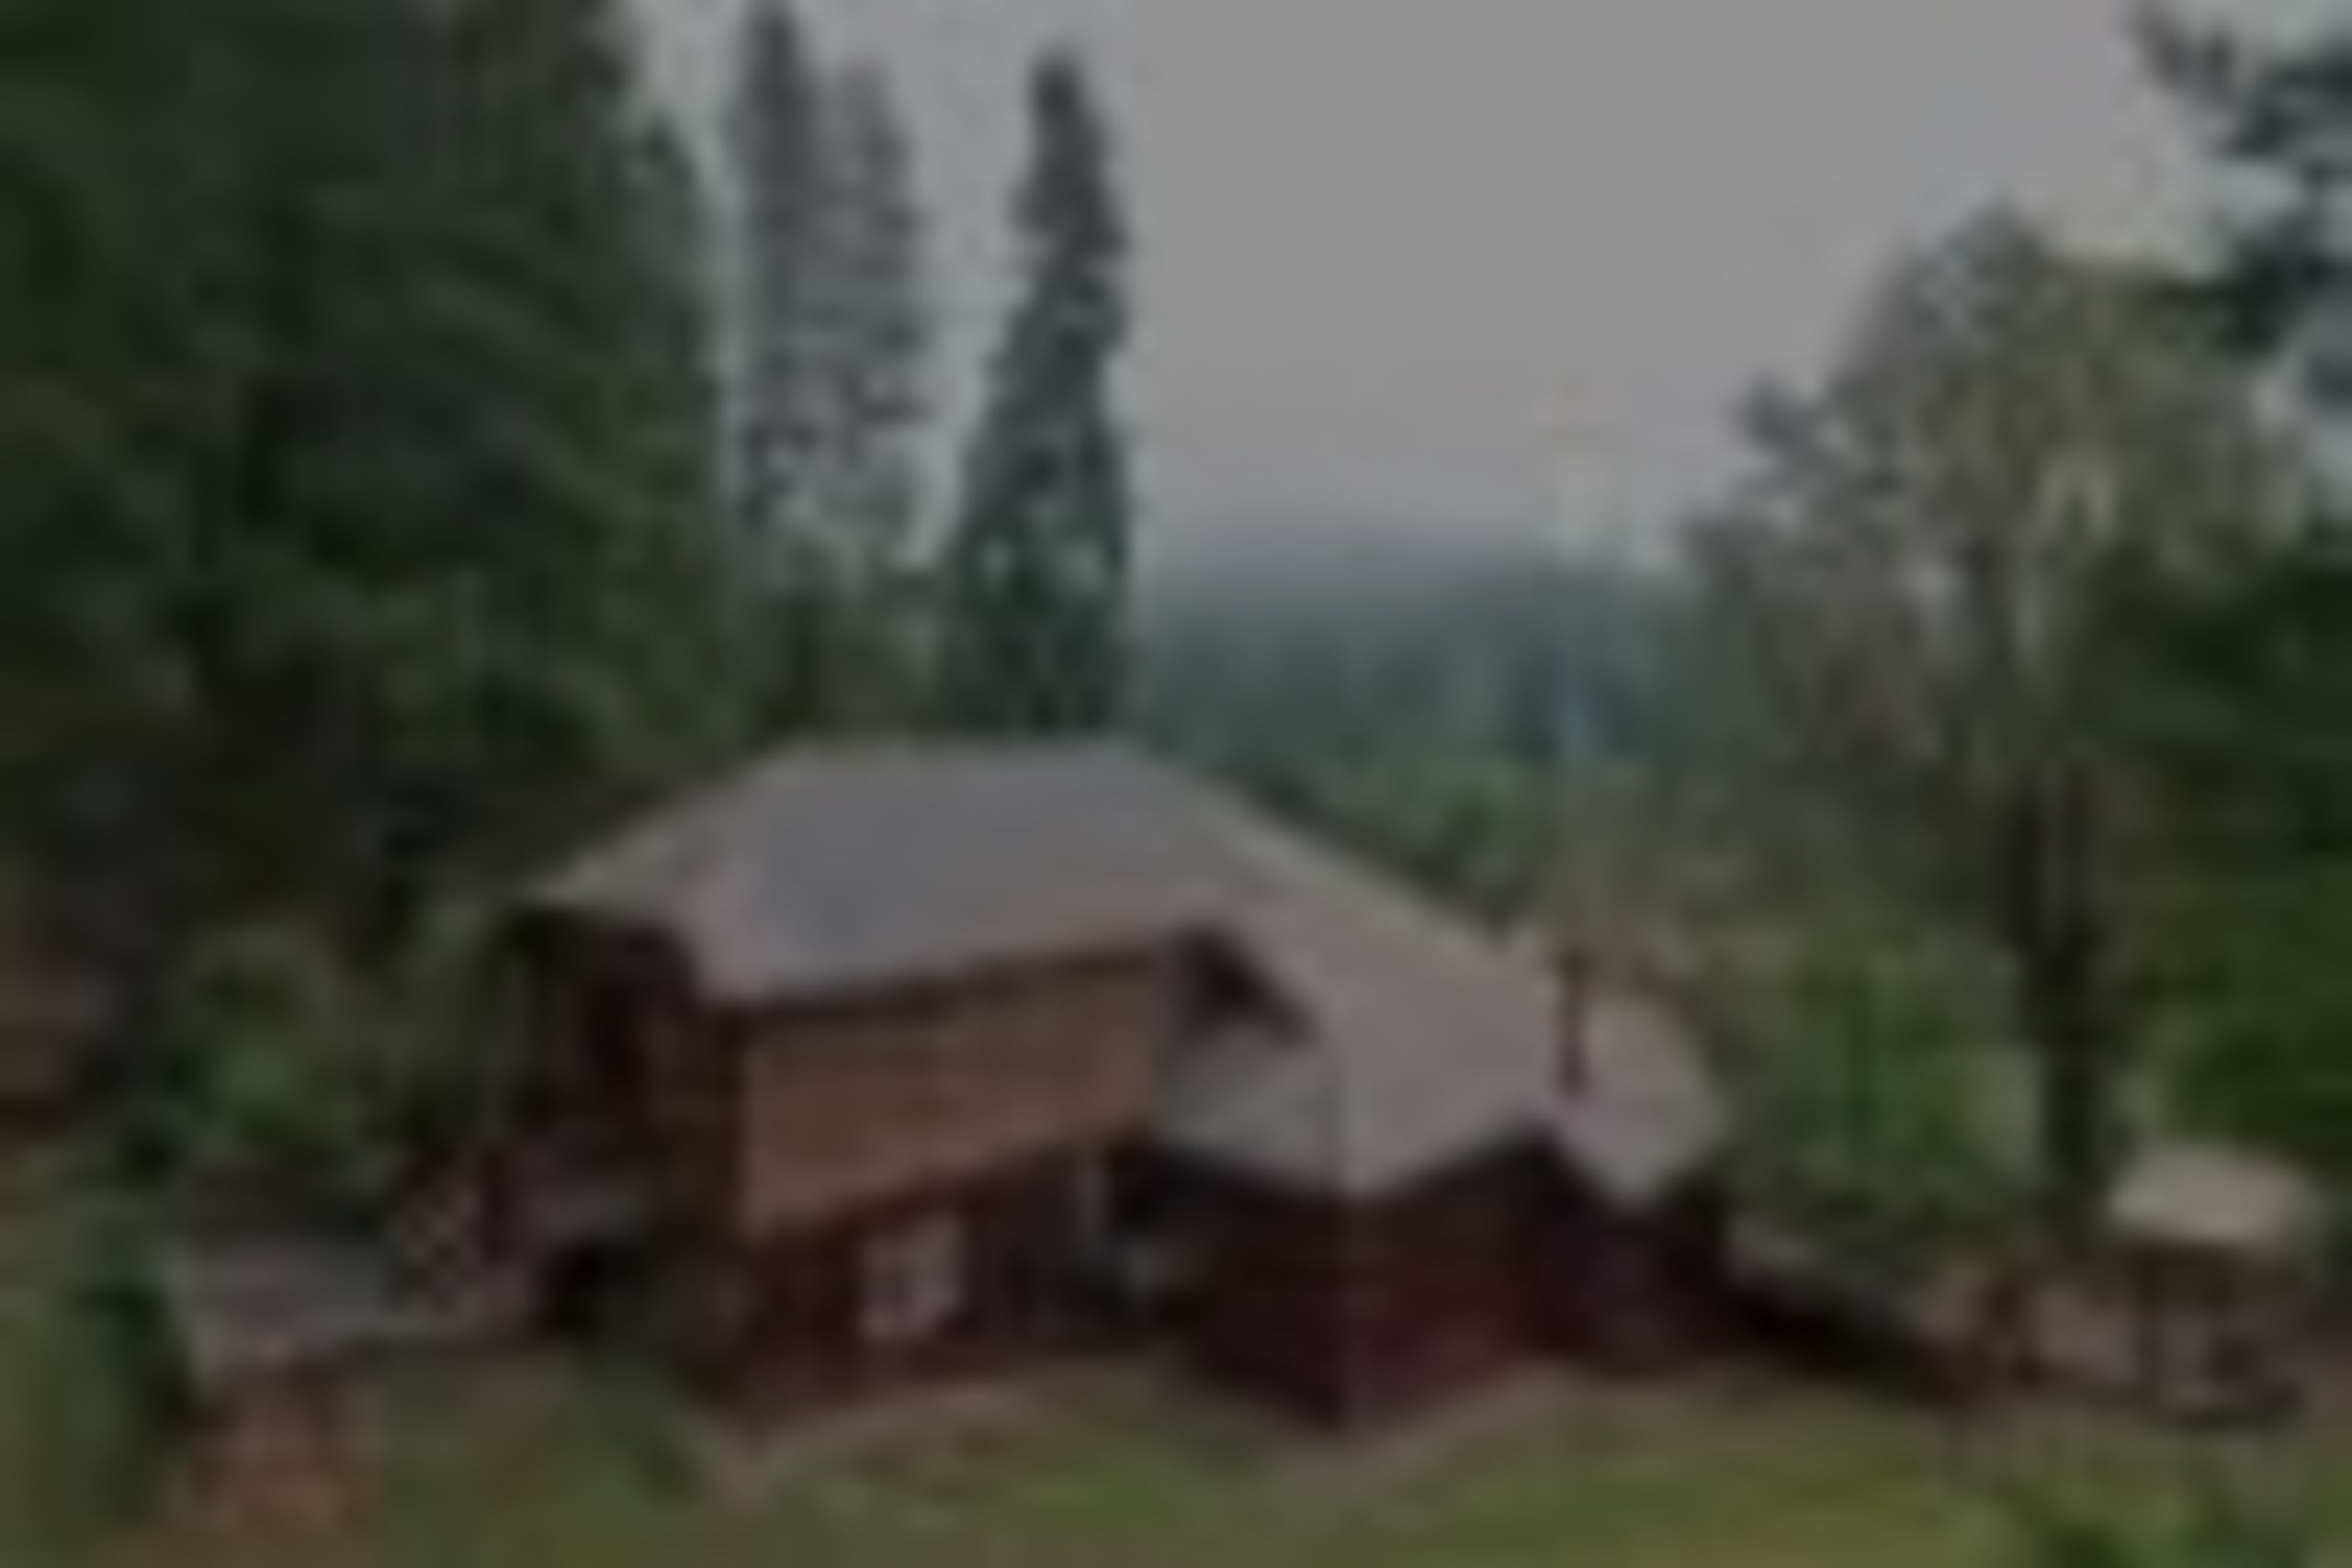 29951 FOX HOLLOW RD, EUGENE, OREGON